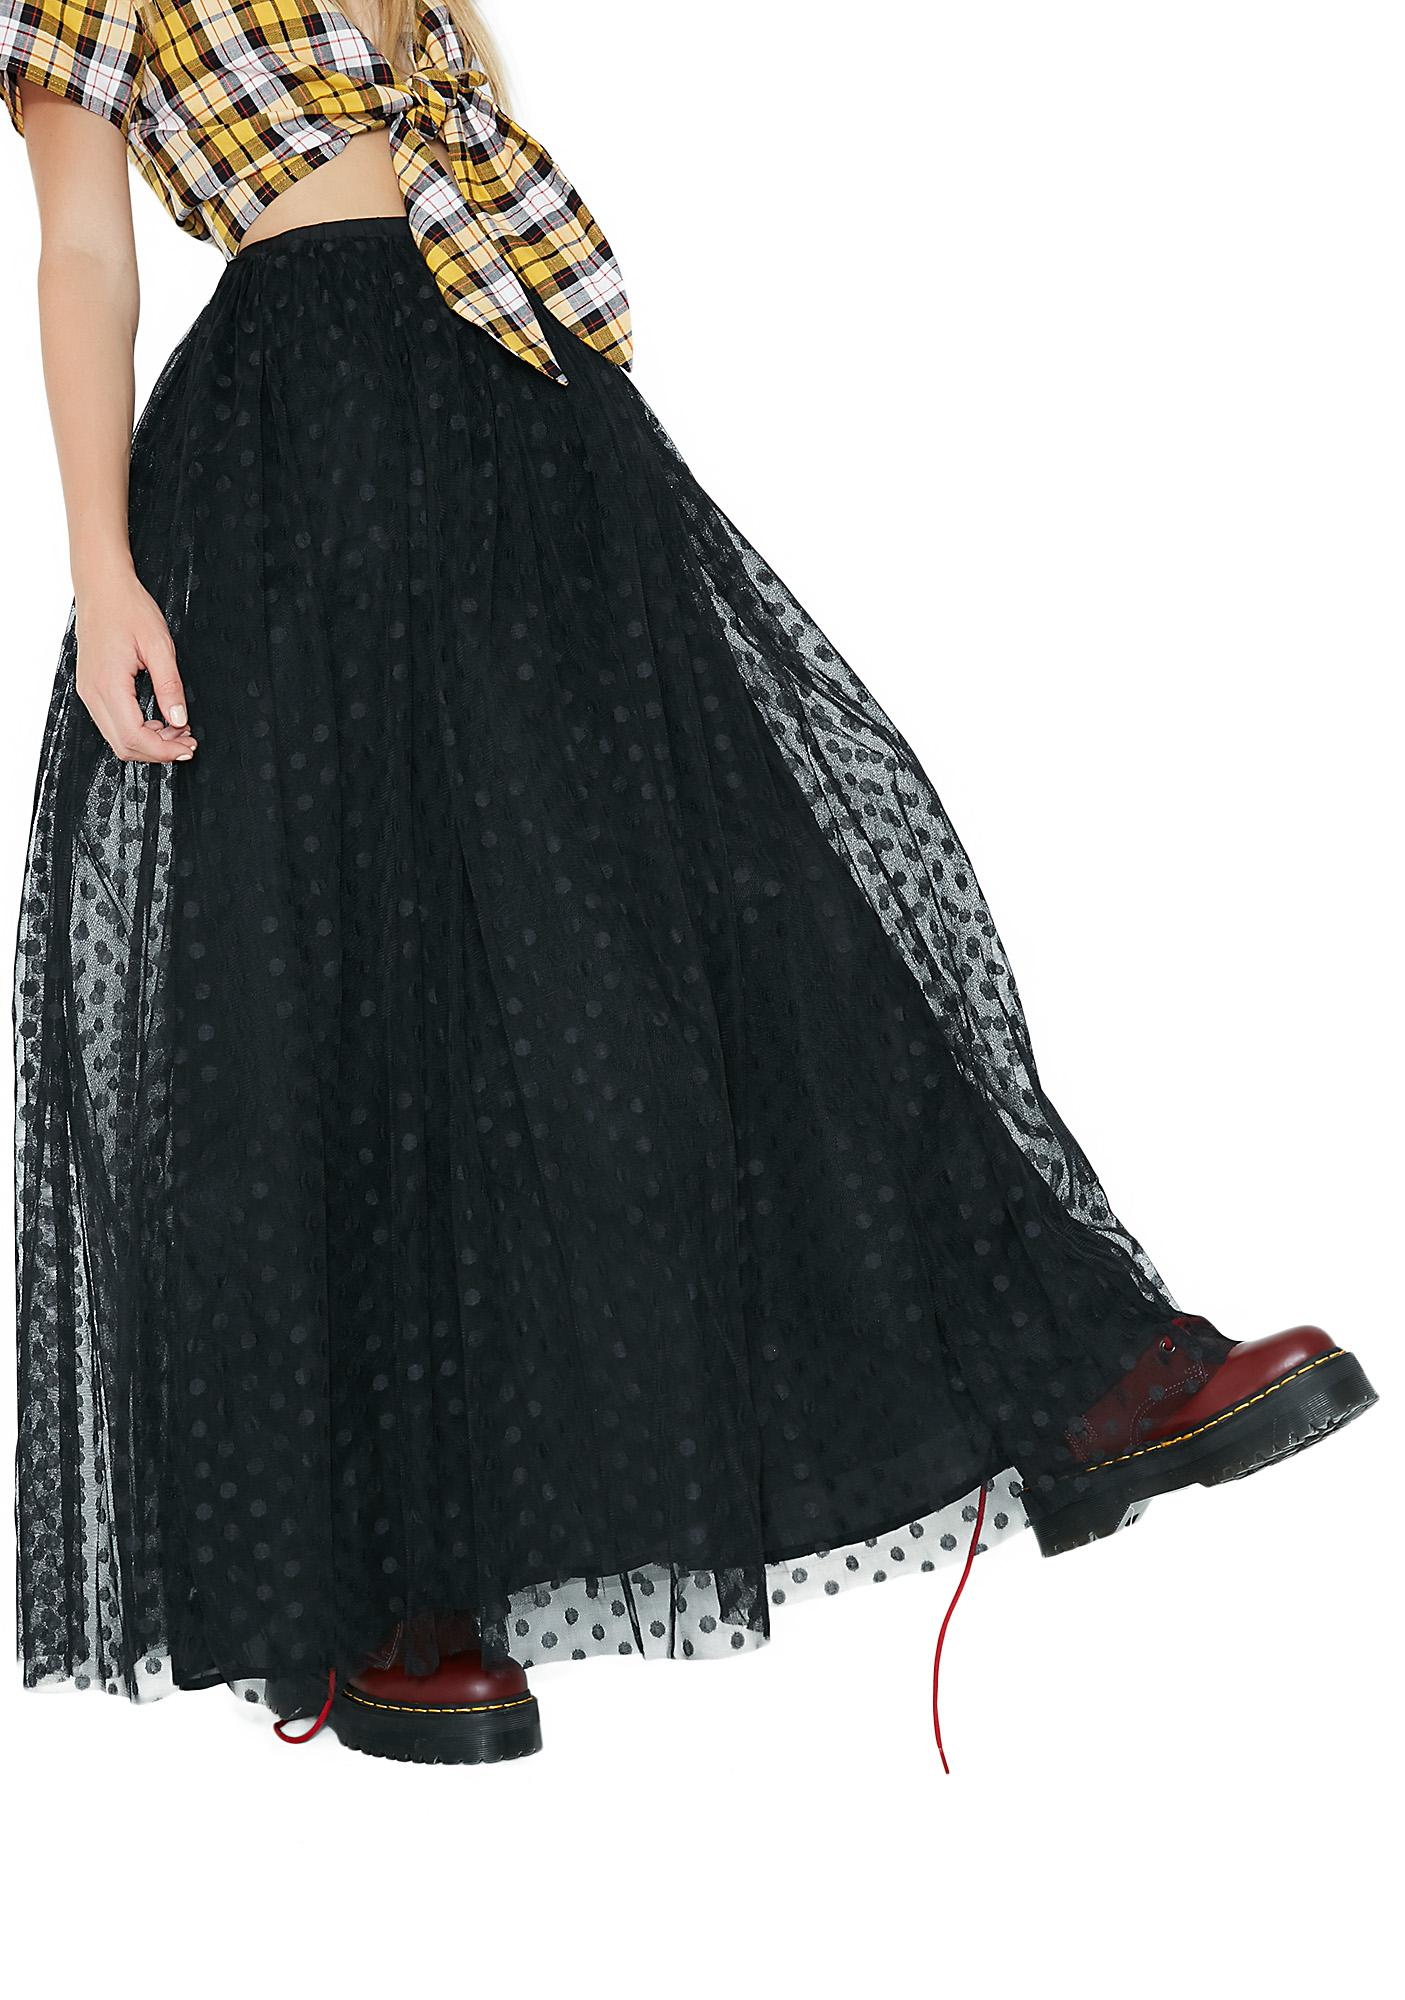 Glamorous Princess Of The Night Tulle Skirt